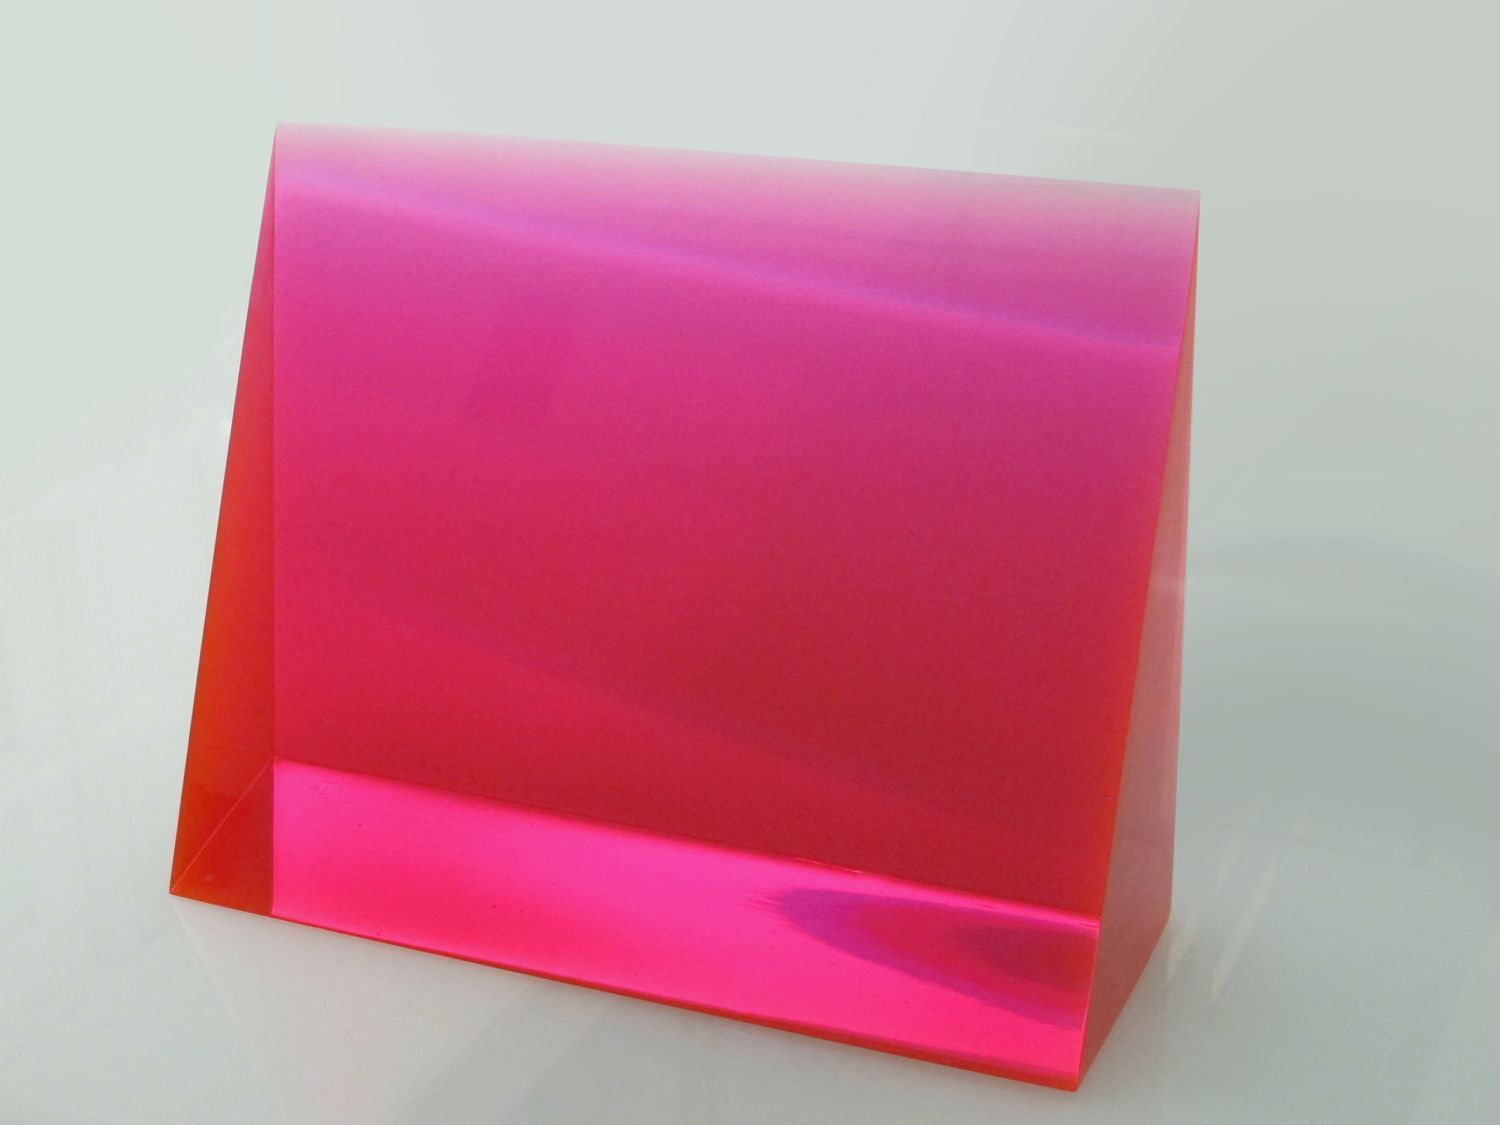 pink gradient wedge cast polyester resin - eric cahan | // art ... for Polyester Resin Sculpture  70ref